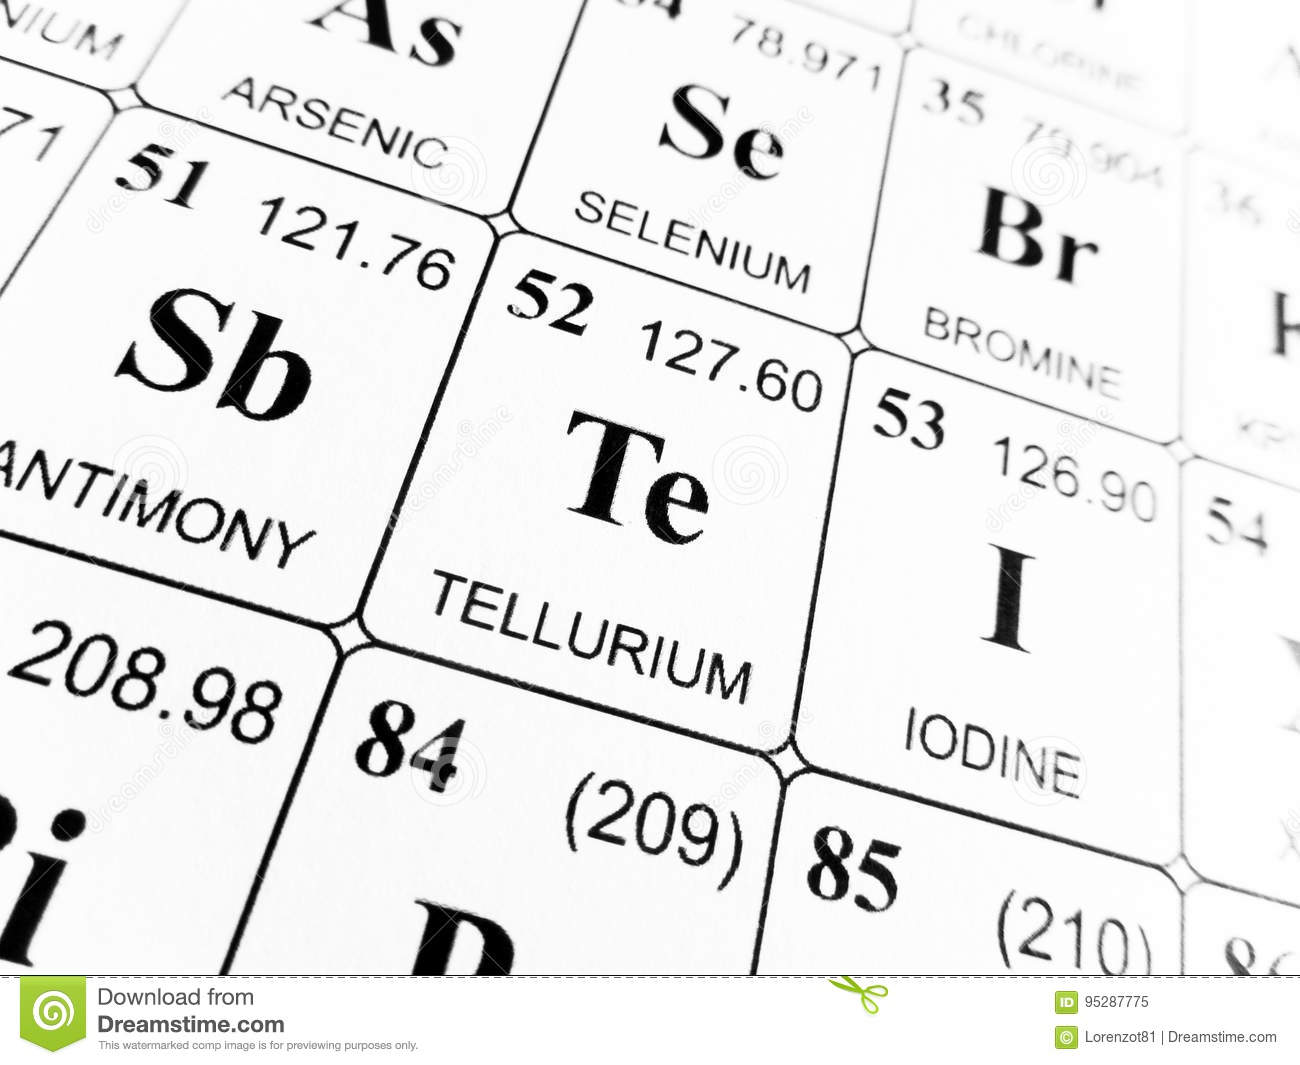 Tellurium on the periodic table of the elements stock image image download comp urtaz Choice Image